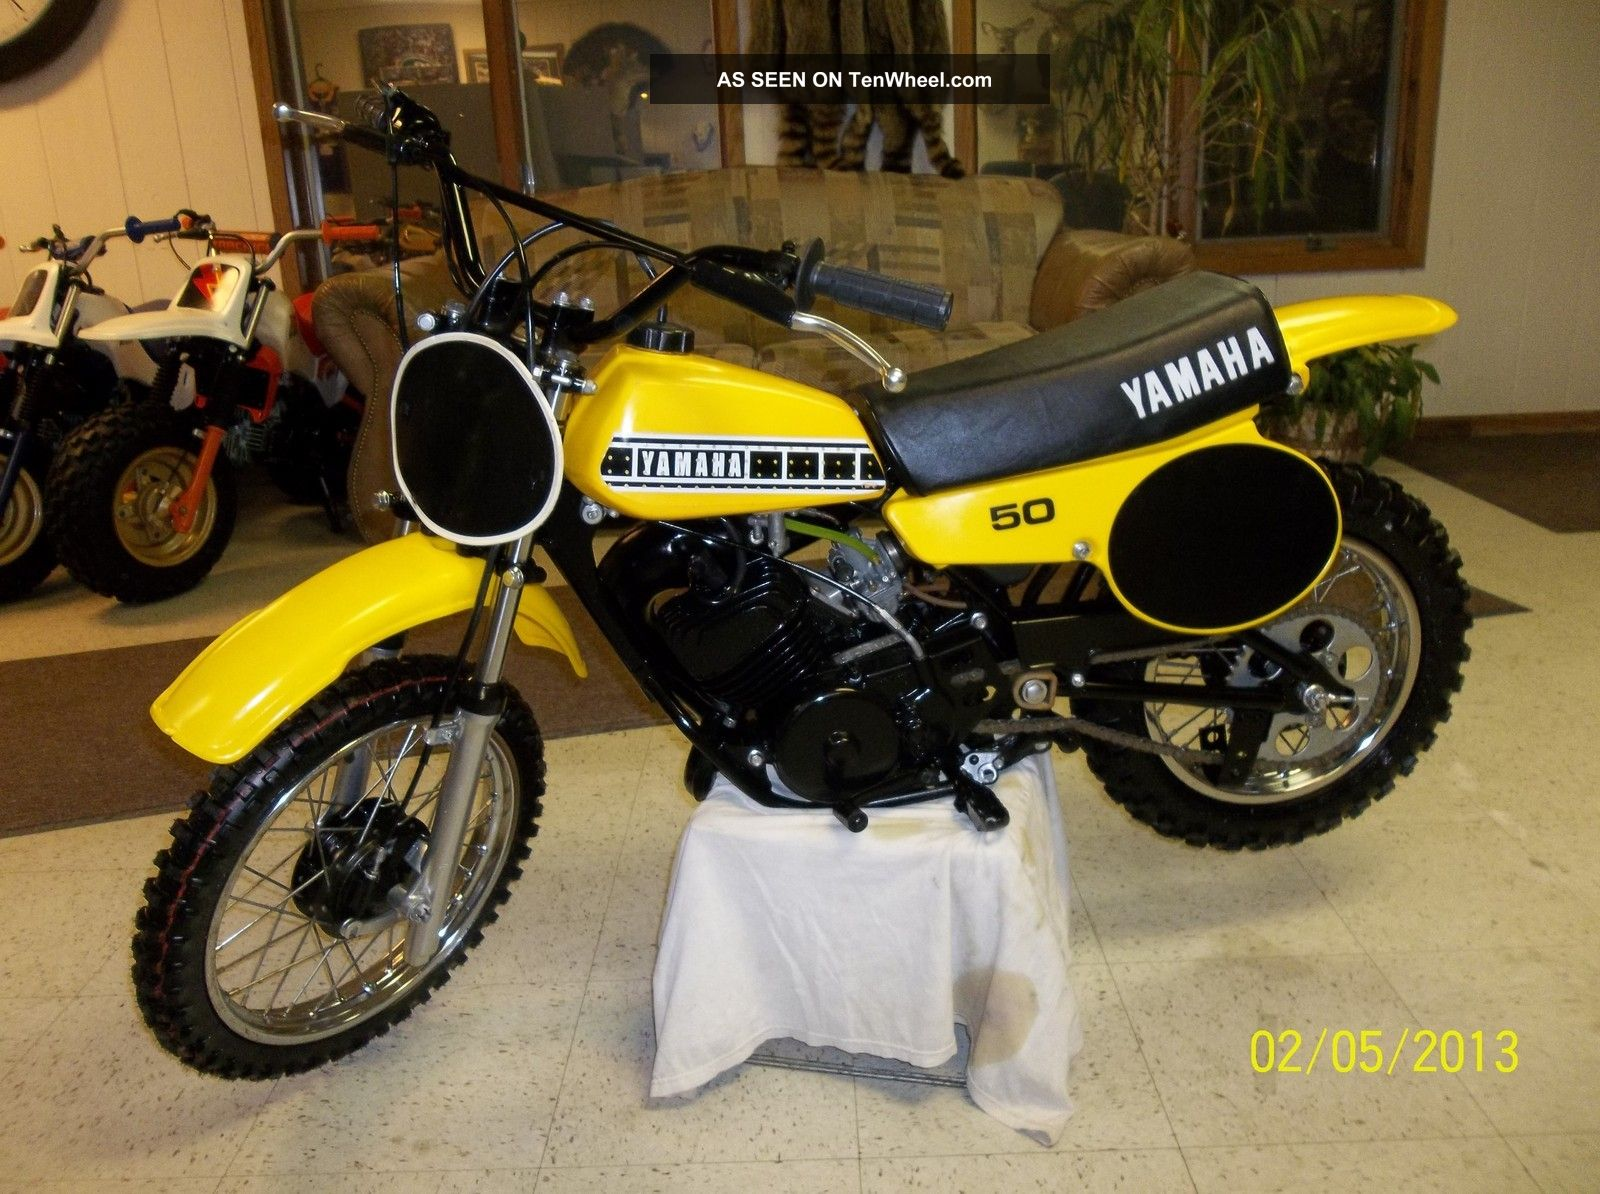 1980 Yamaha Yz50 Yz 50 Yz Ahrma Vintage Mx Motocross Xr 50 Enduro Race Minibike YZ photo